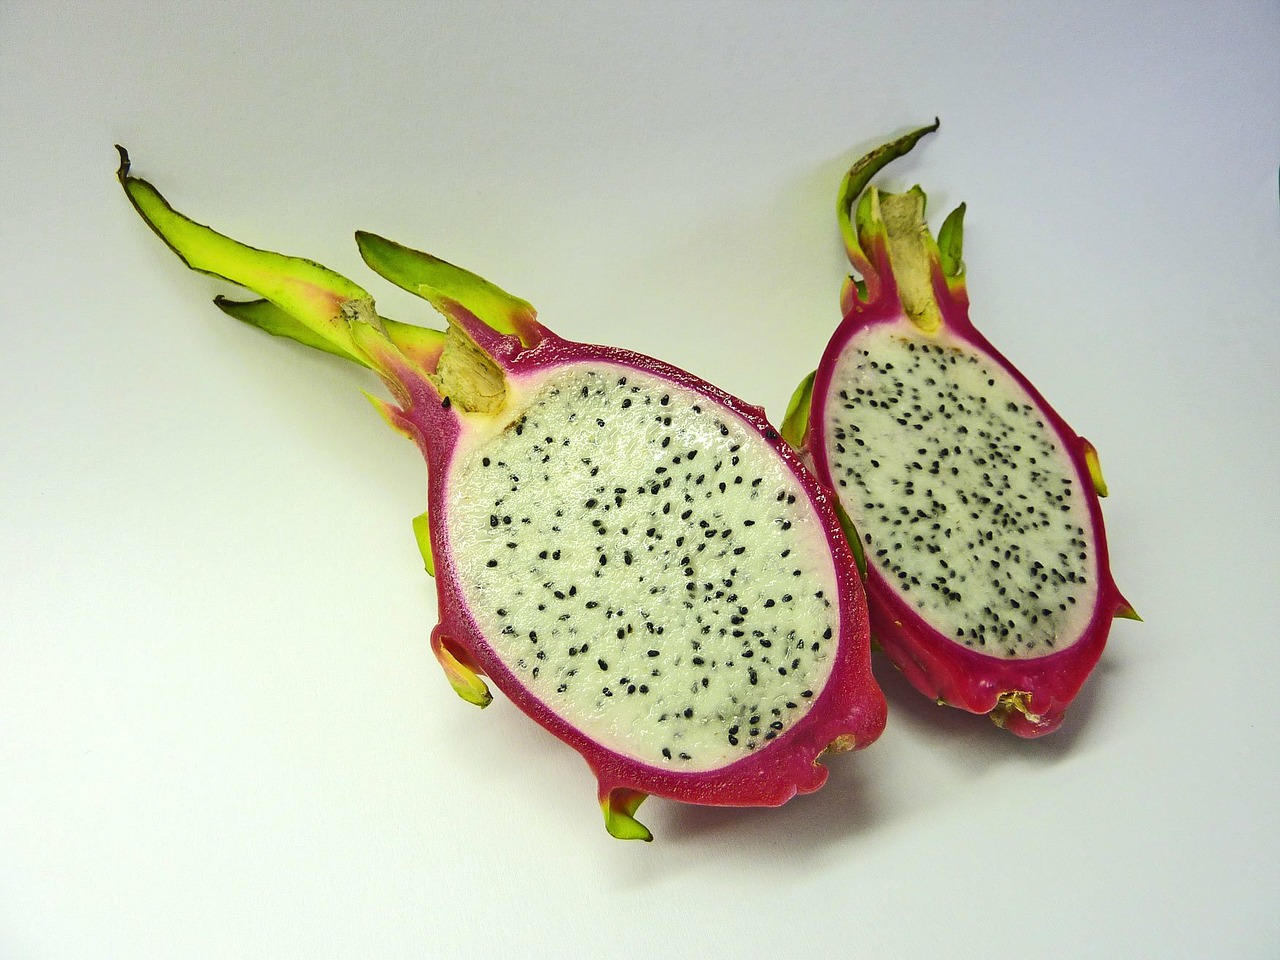 dragon fruit pitahaya pitaya free photo